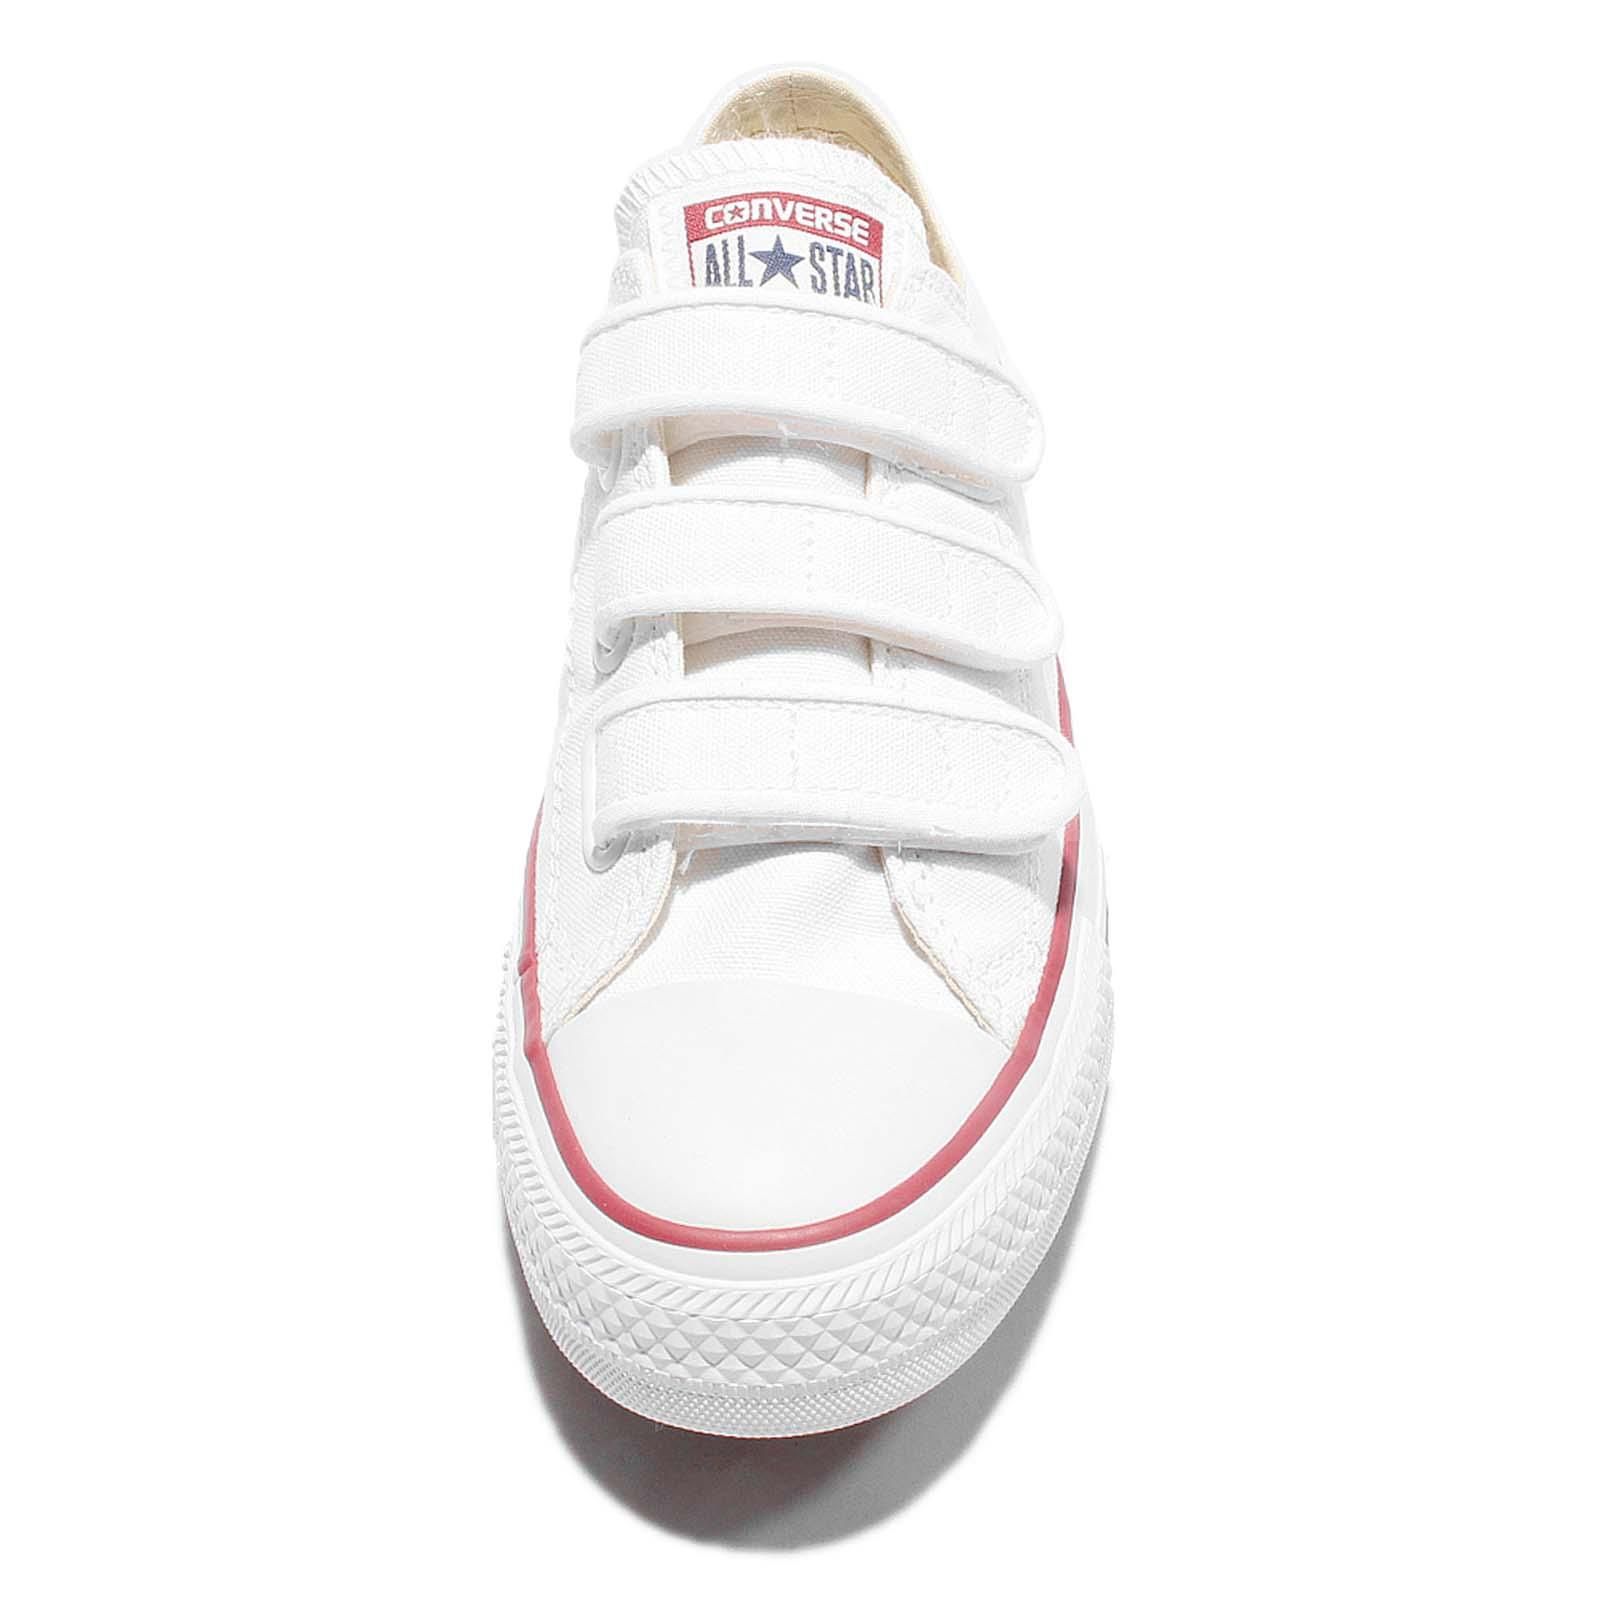 Converse chuck taylor all star v3 white canvas strap men casual size chart nvjuhfo Image collections